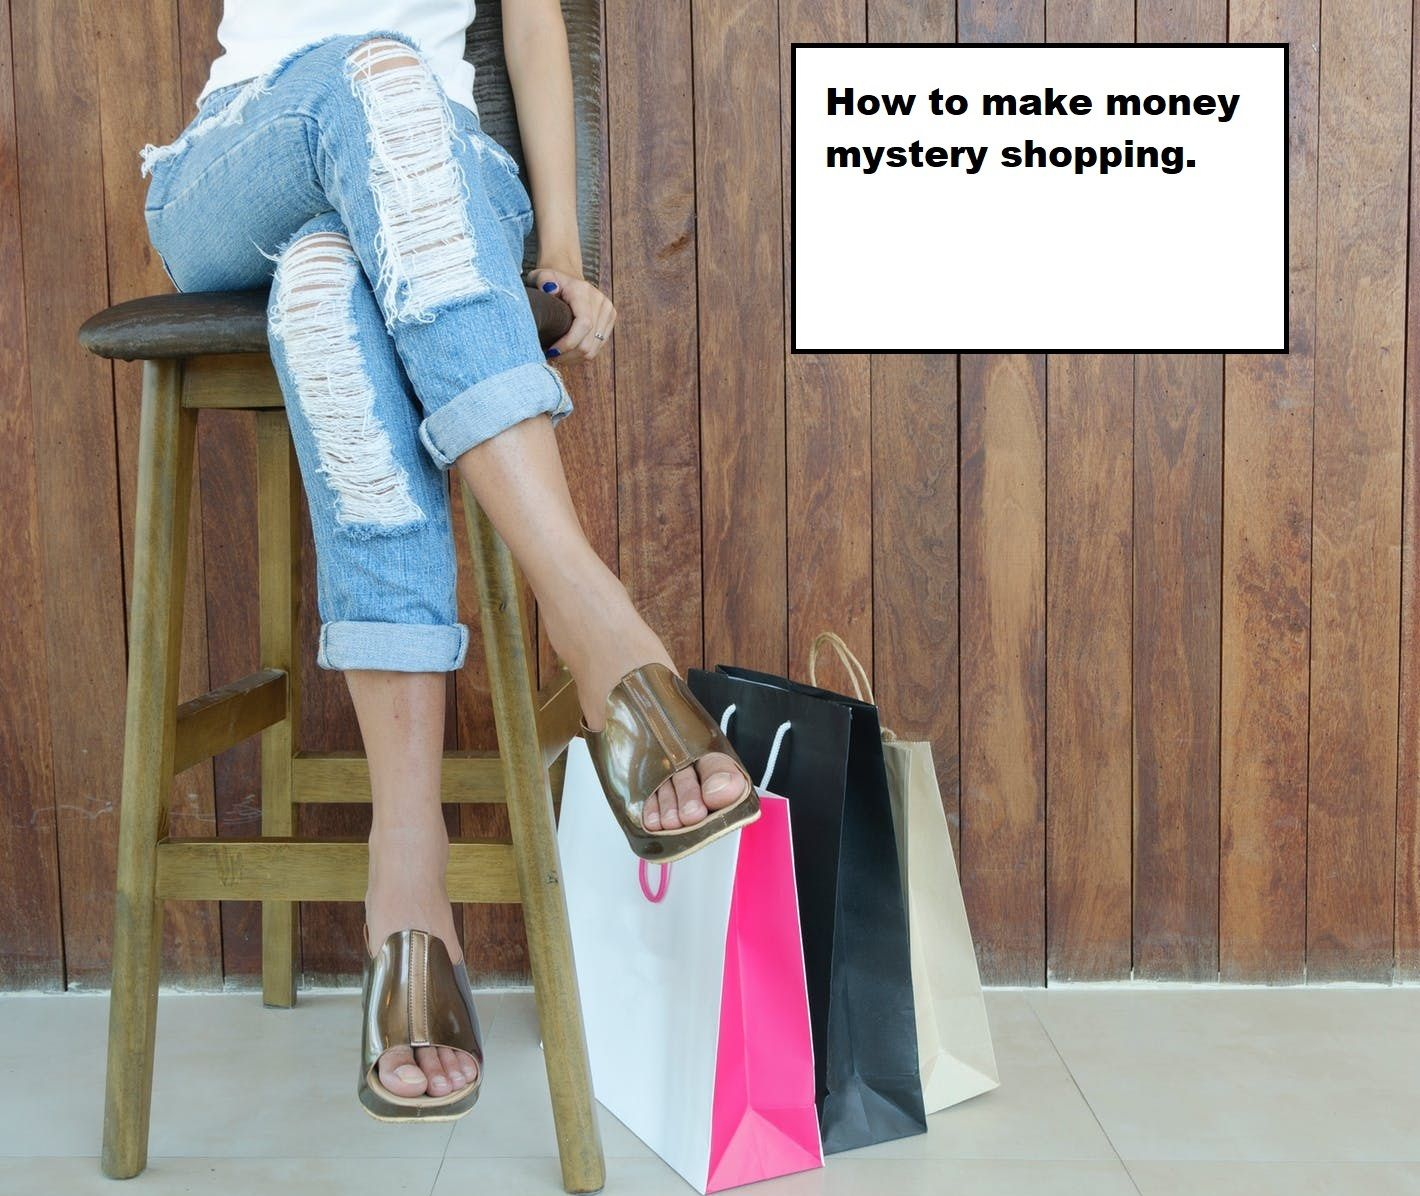 Can you make money mystery shopping? Click Here To Learn